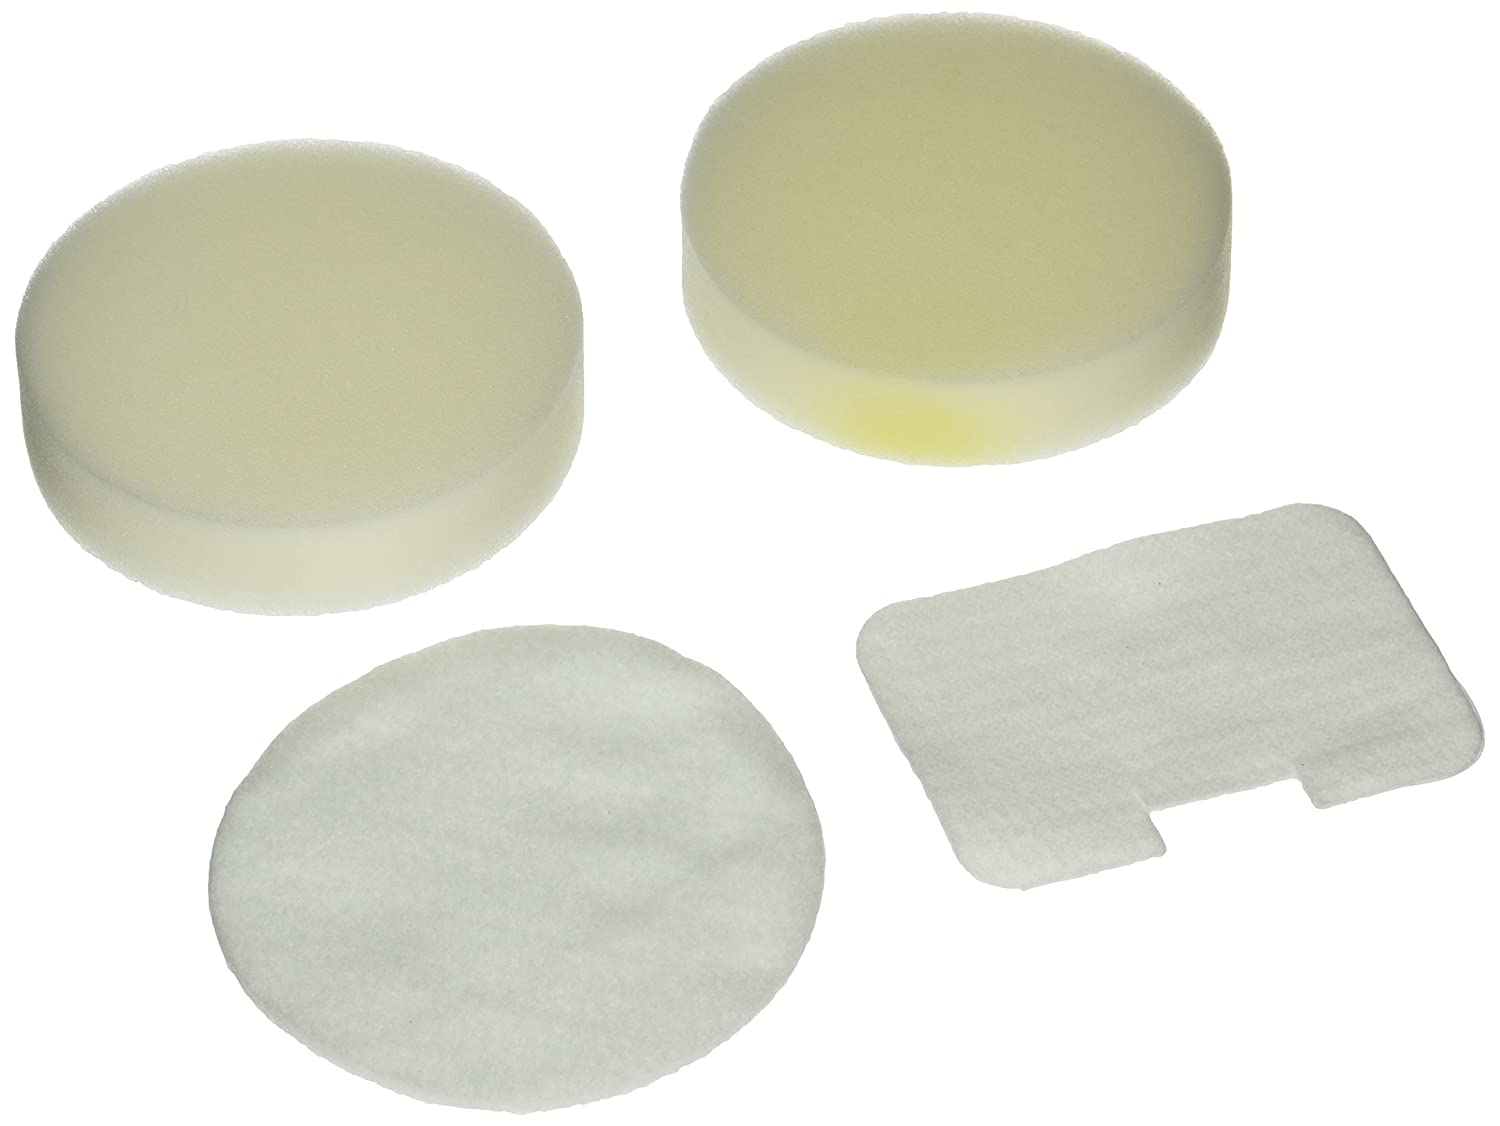 Shark NV22L Foam and Felt Replacement Vacuum Filter Kit 4-Pack Designed To Fit Shark Navigator NV22L; Replaces Shark Vacuum Part # XF22; Designed & Engineered By Crucial Vacuum 609722029858